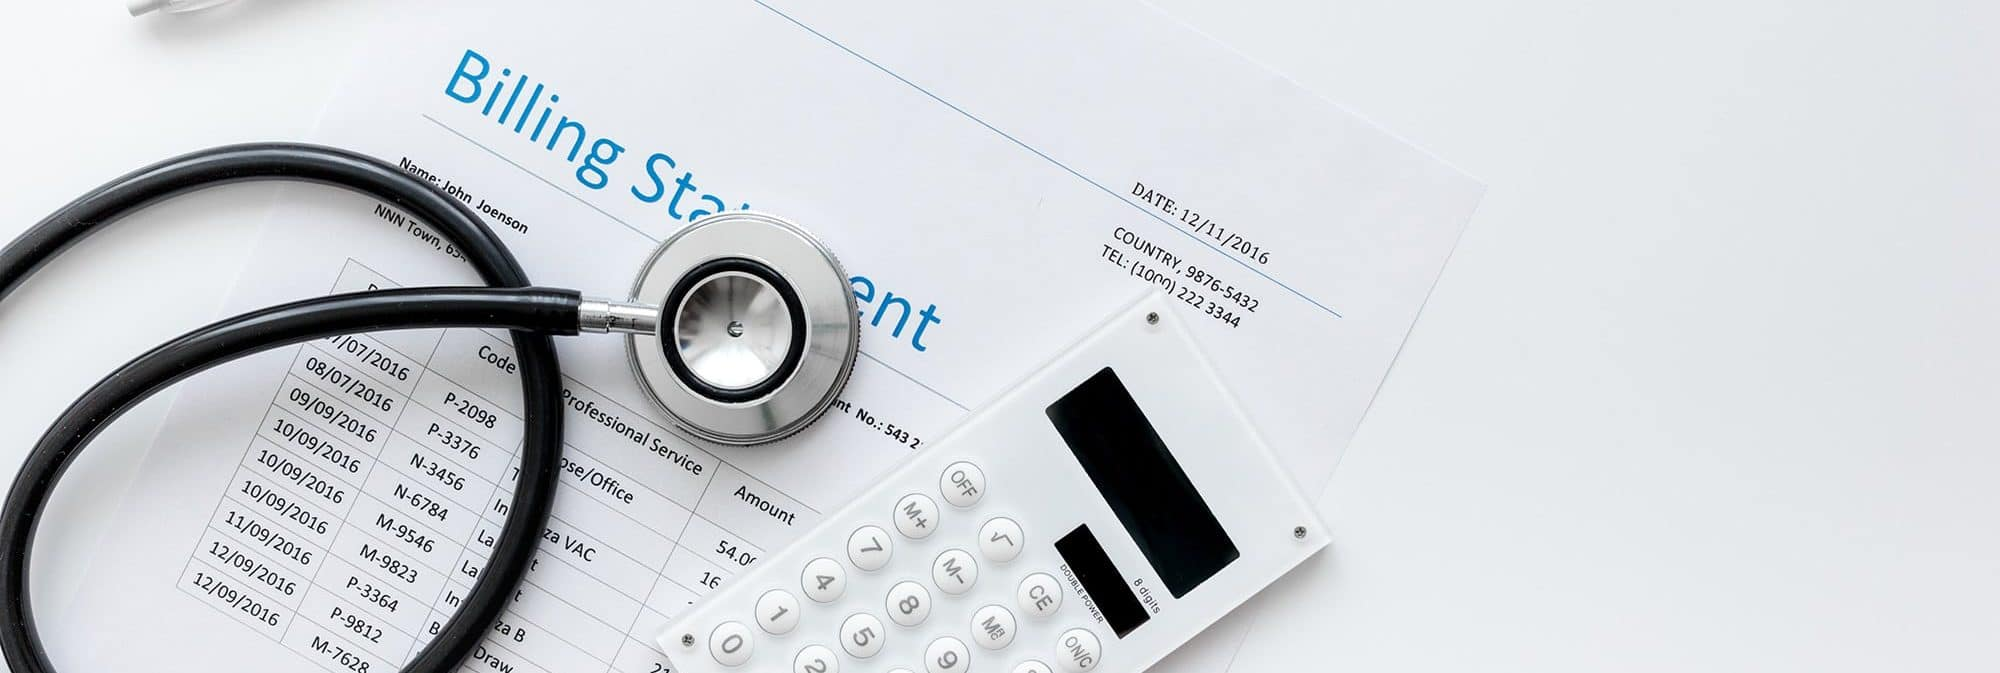 picture of a medical billing statement with a stethoscope